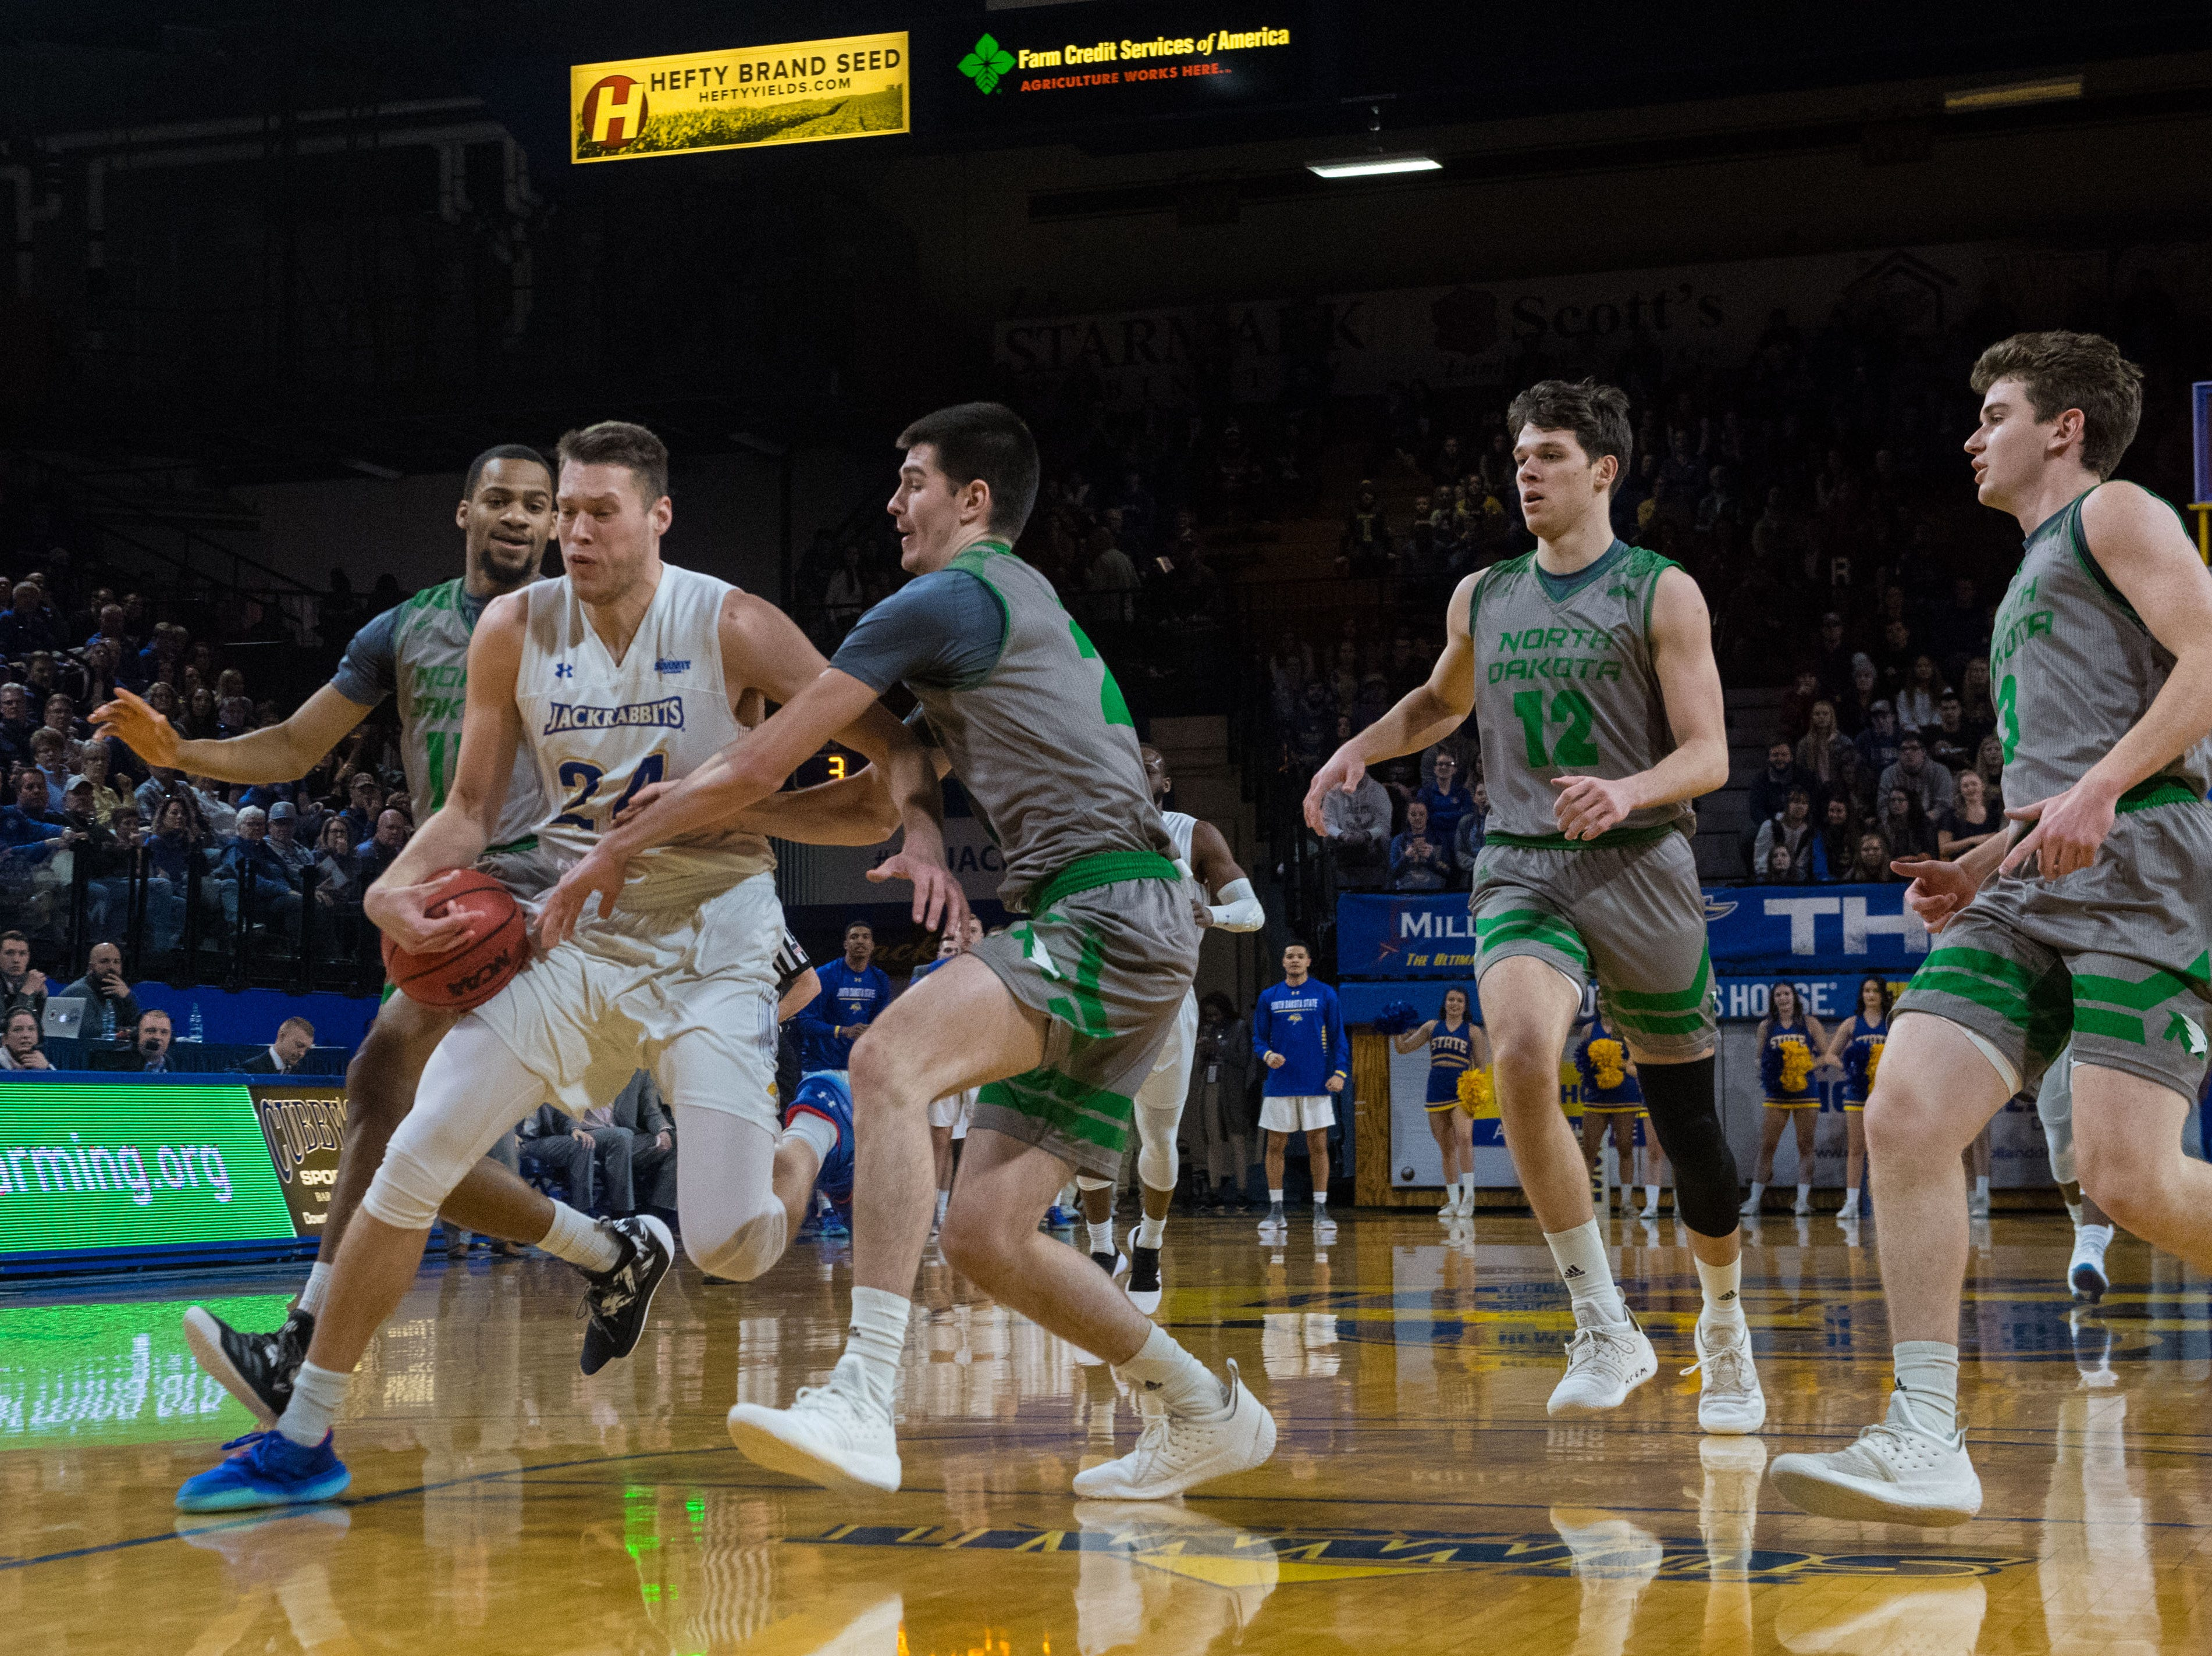 South Dakota State's Mike Daum (24) dribbles the ball past North Dakota players during a game in Brookings, S.D., Saturday, Feb. 9, 2019.